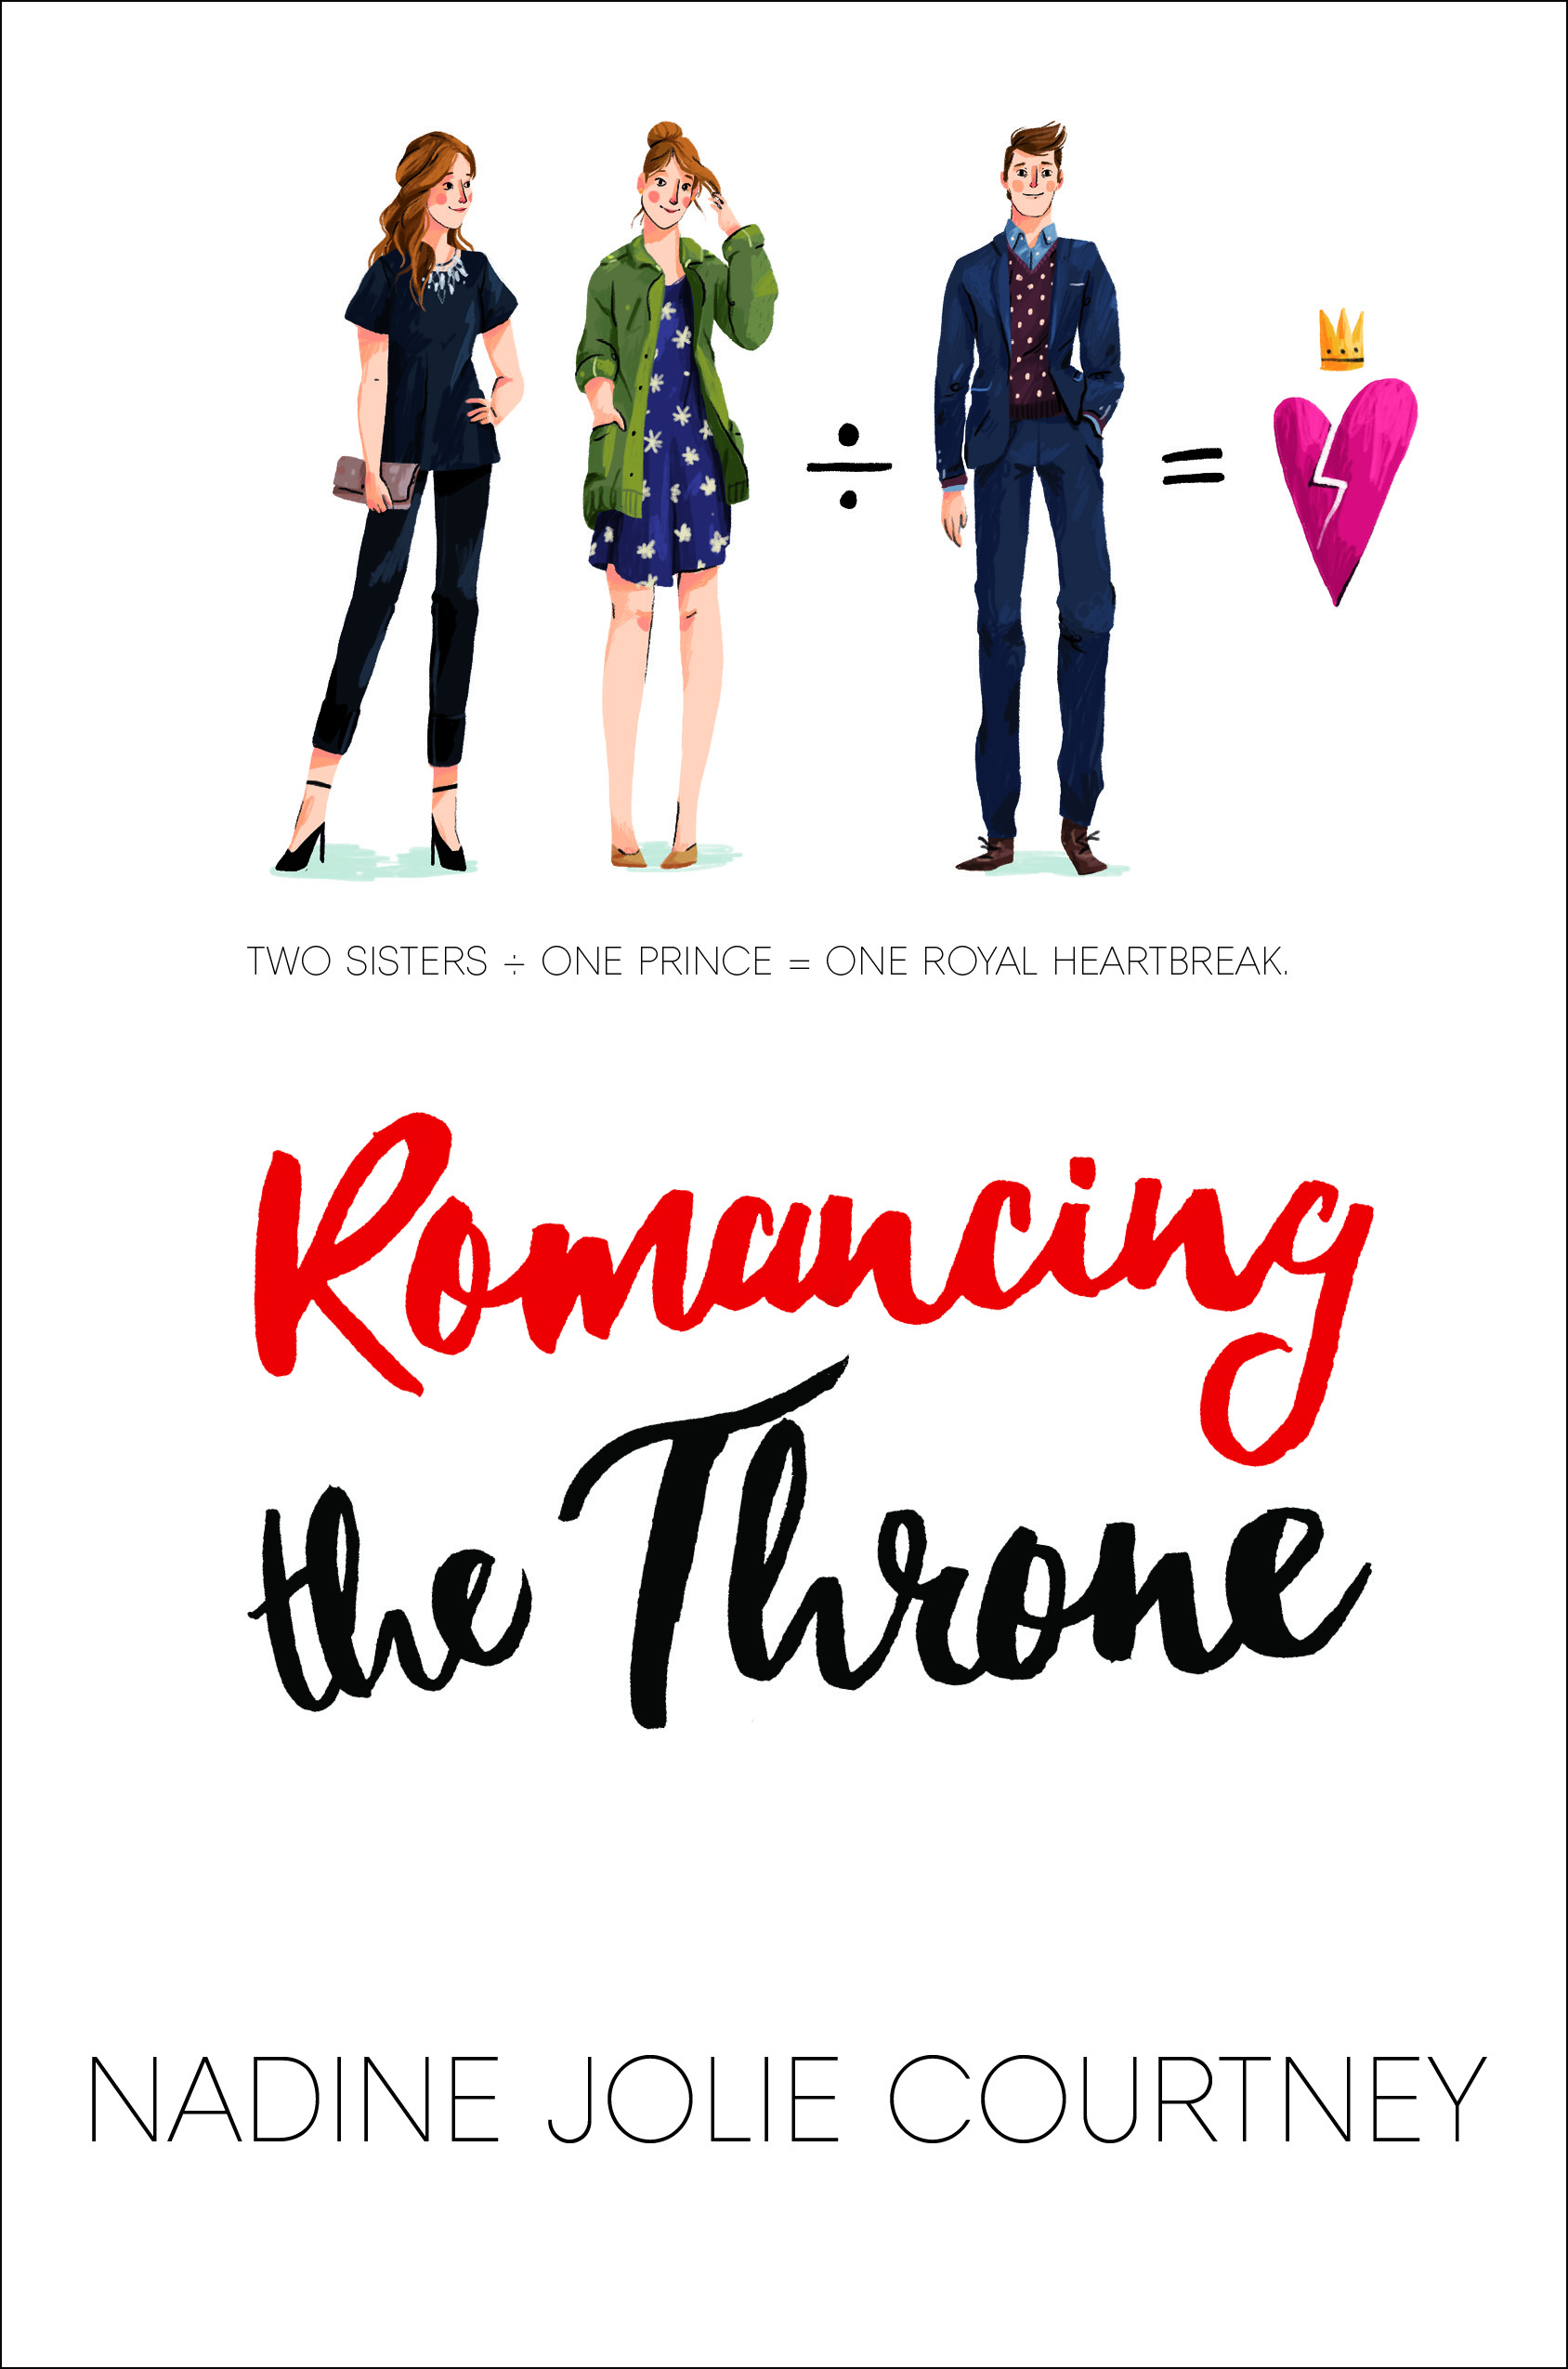 Romancing the Throne is available for pre-order!